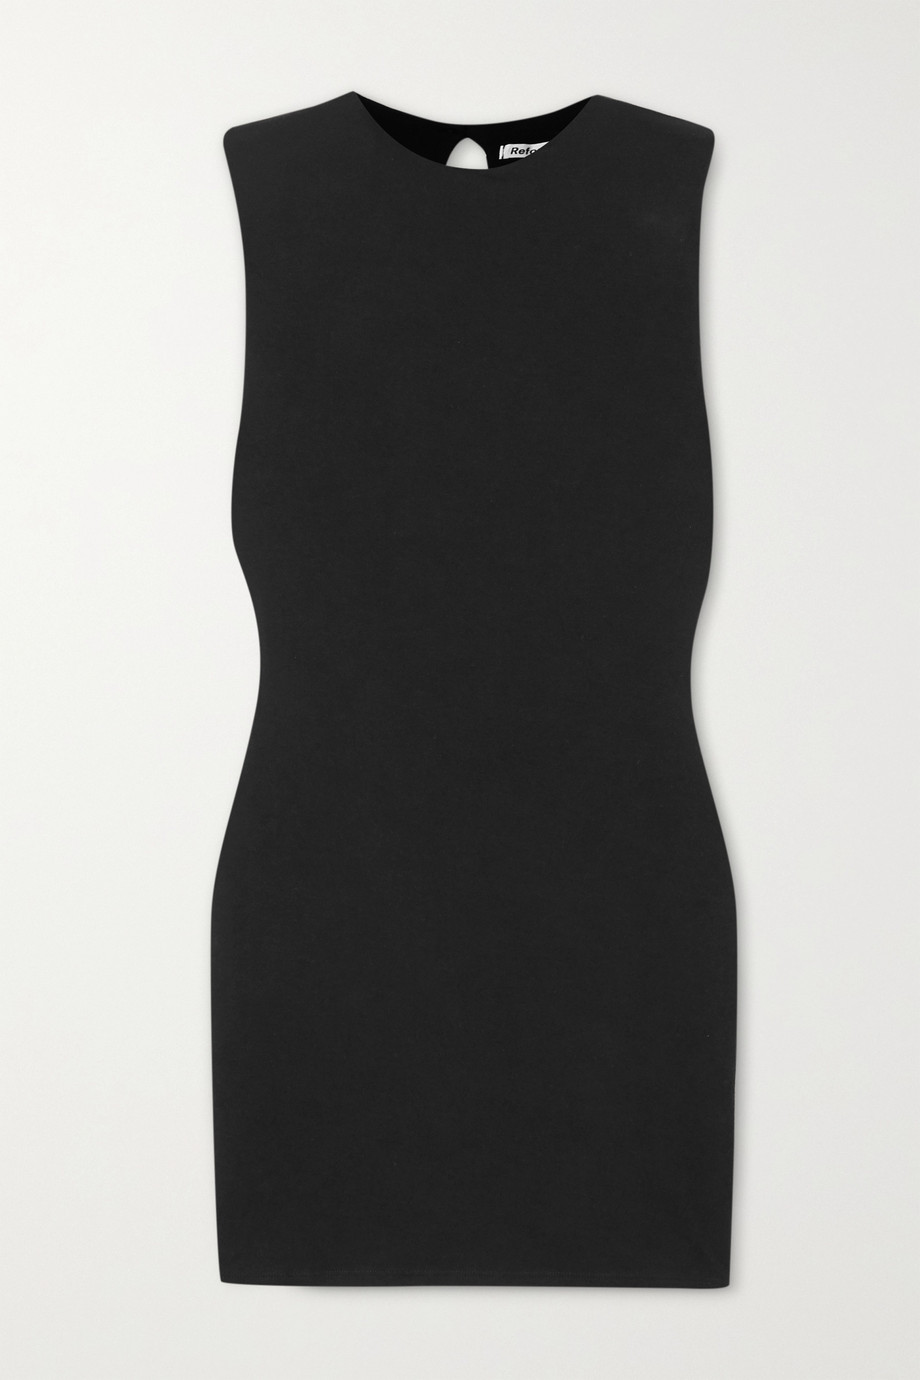 Reformation + NET SUSTAIN Rumi stretch-Tencel mini dress